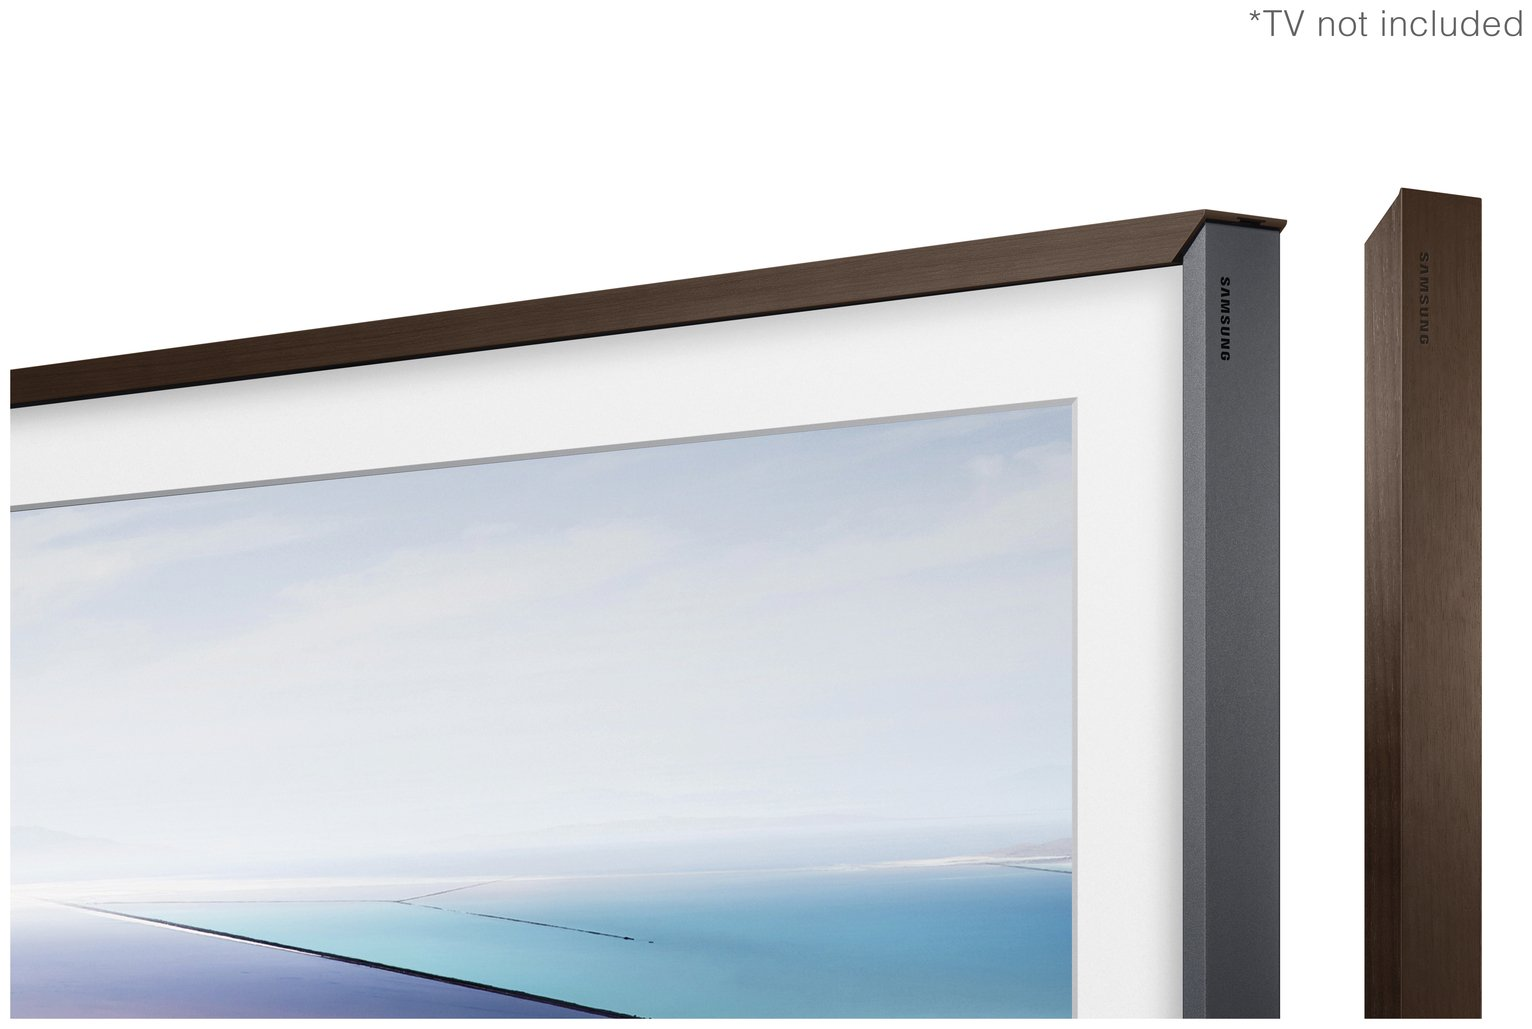 Samsung Customisable Bezel for The Frame 43 Inch TV - Walnut